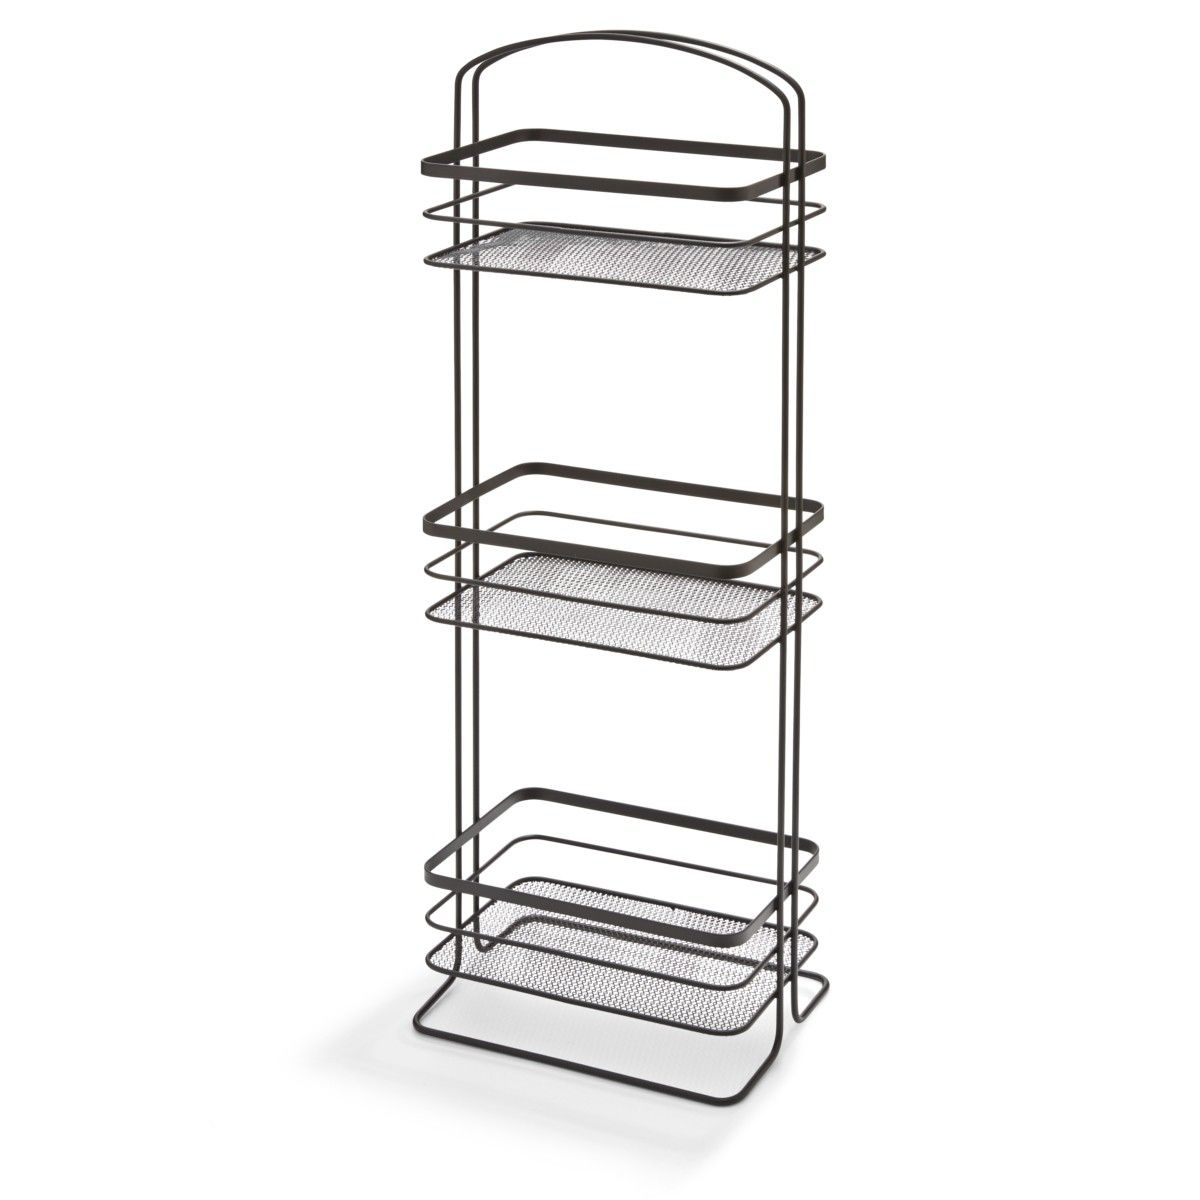 Superbe 3 Tier Floor Caddy Black Kmart From Bathroom Floor Caddy